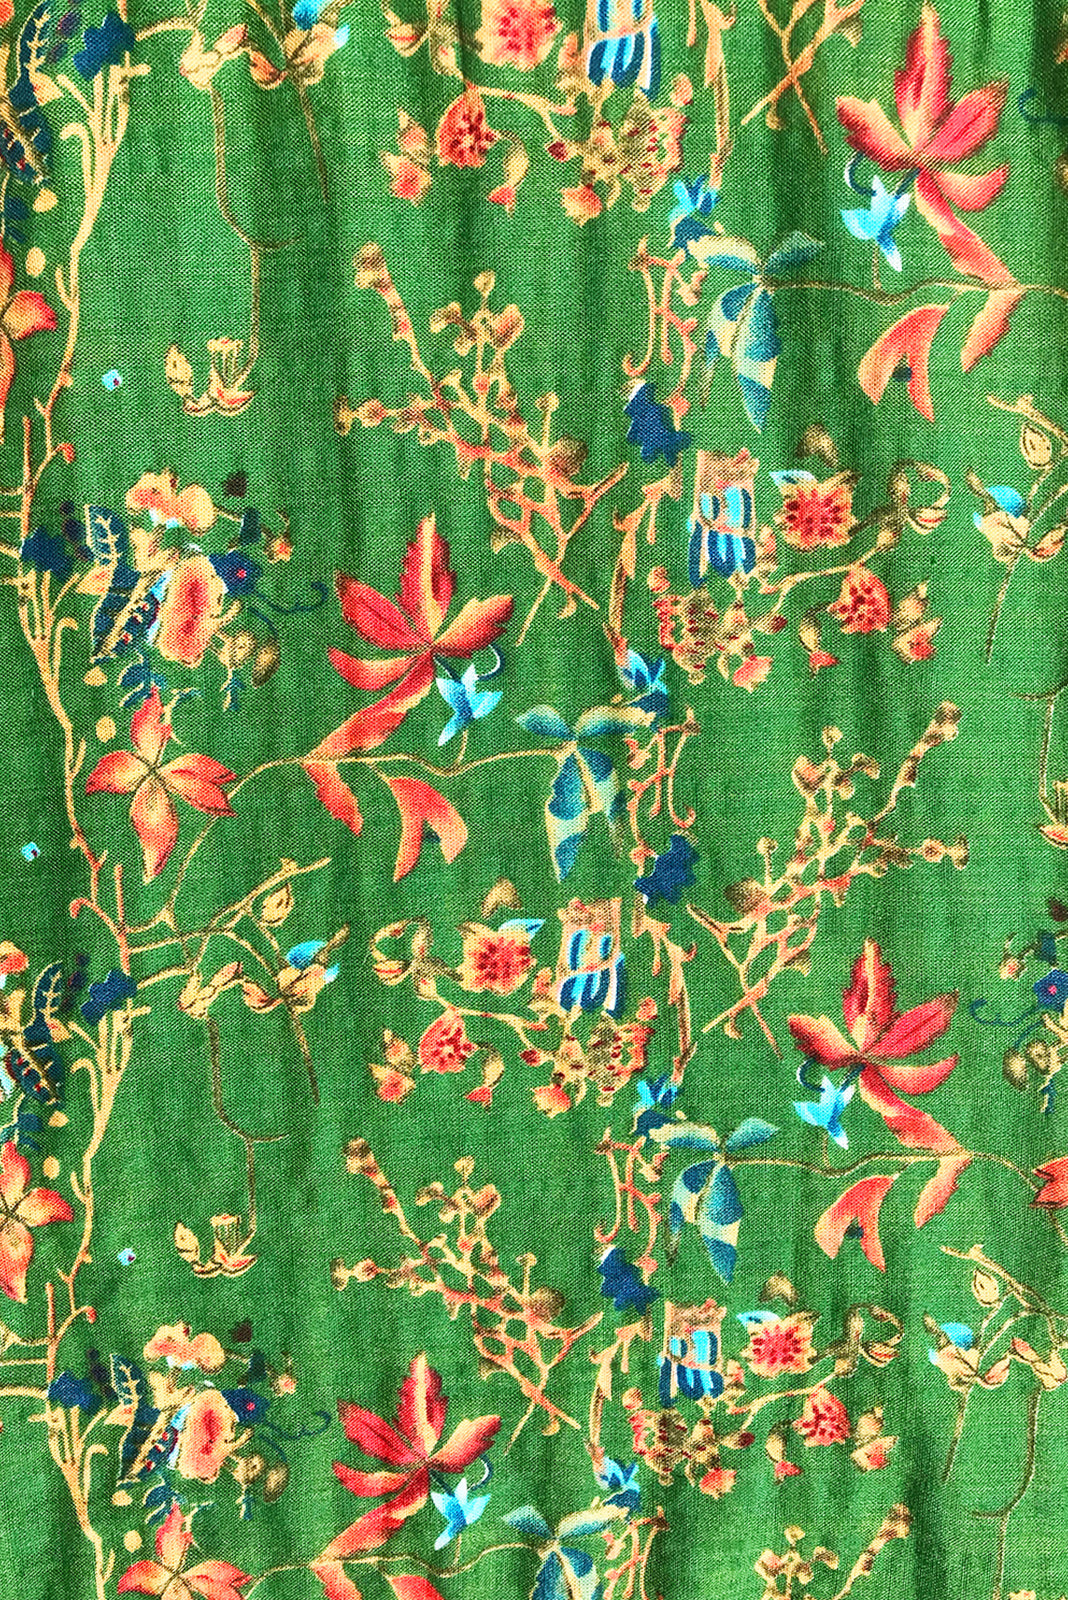 Fabric swatch, 100% woven cotton, bright green base with medium orange, gold, navy and blue floral print.